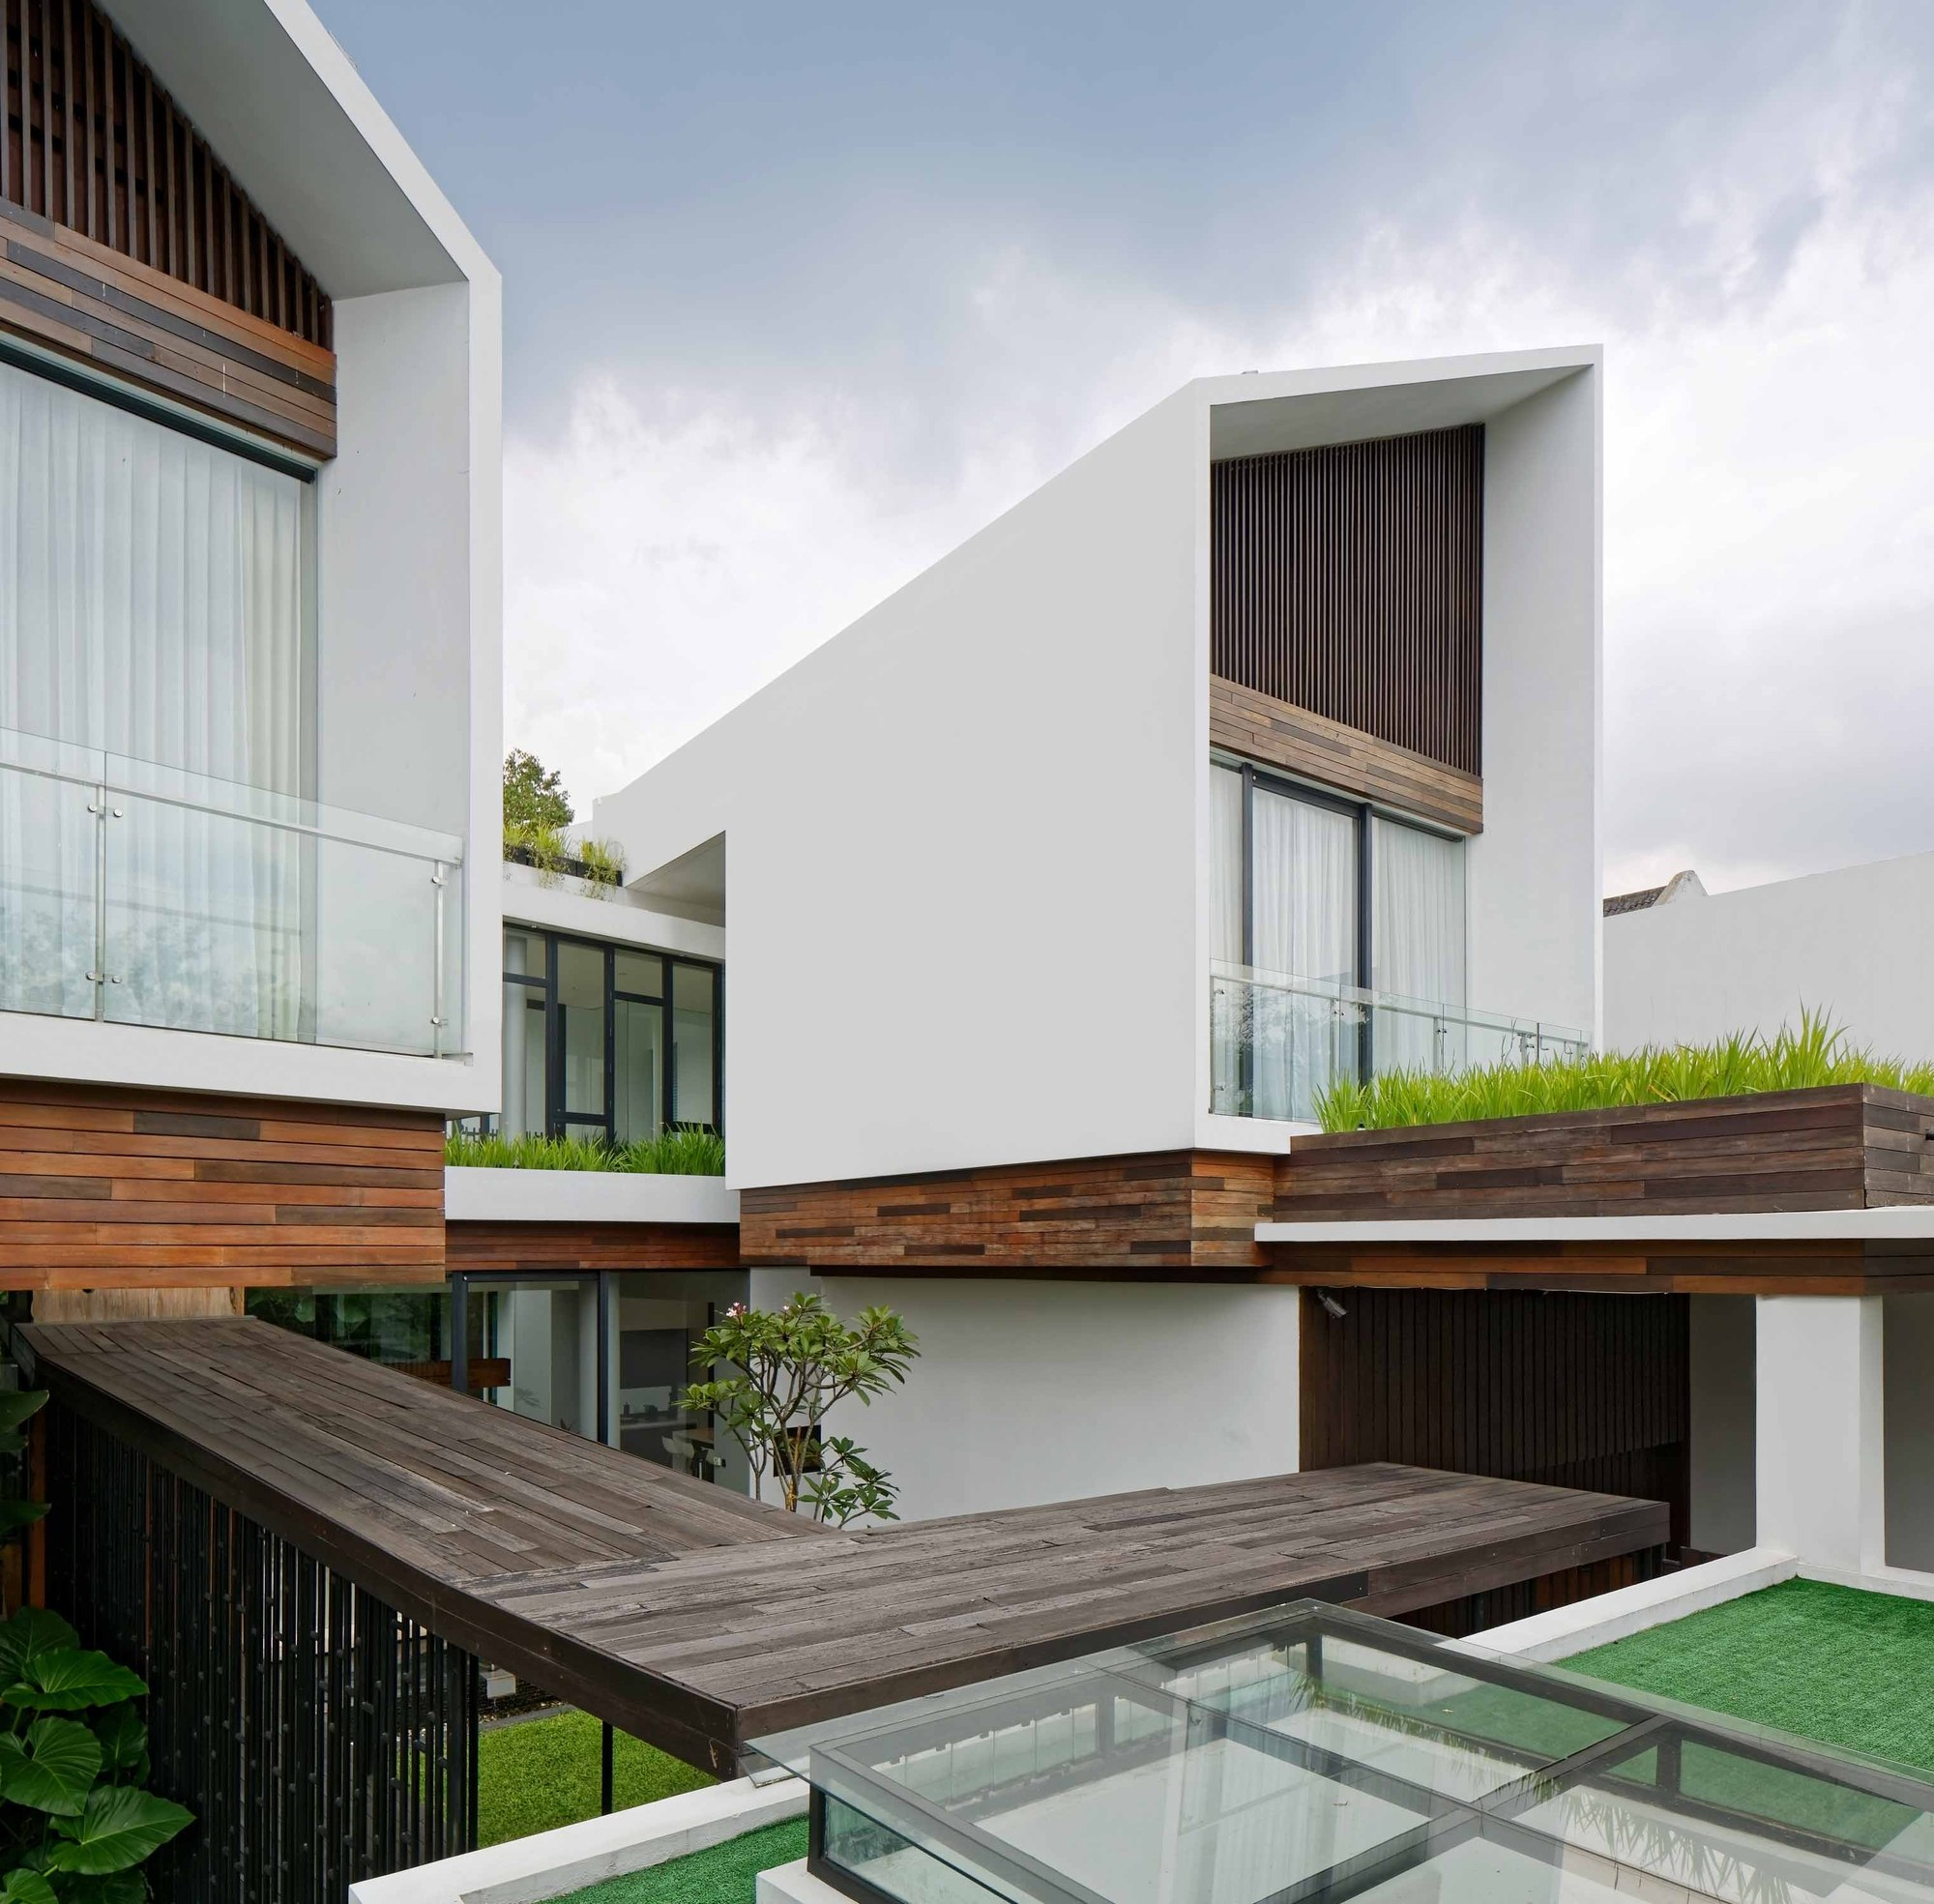 Concrete-wood-and-glass-modern-home-in-Indonesia